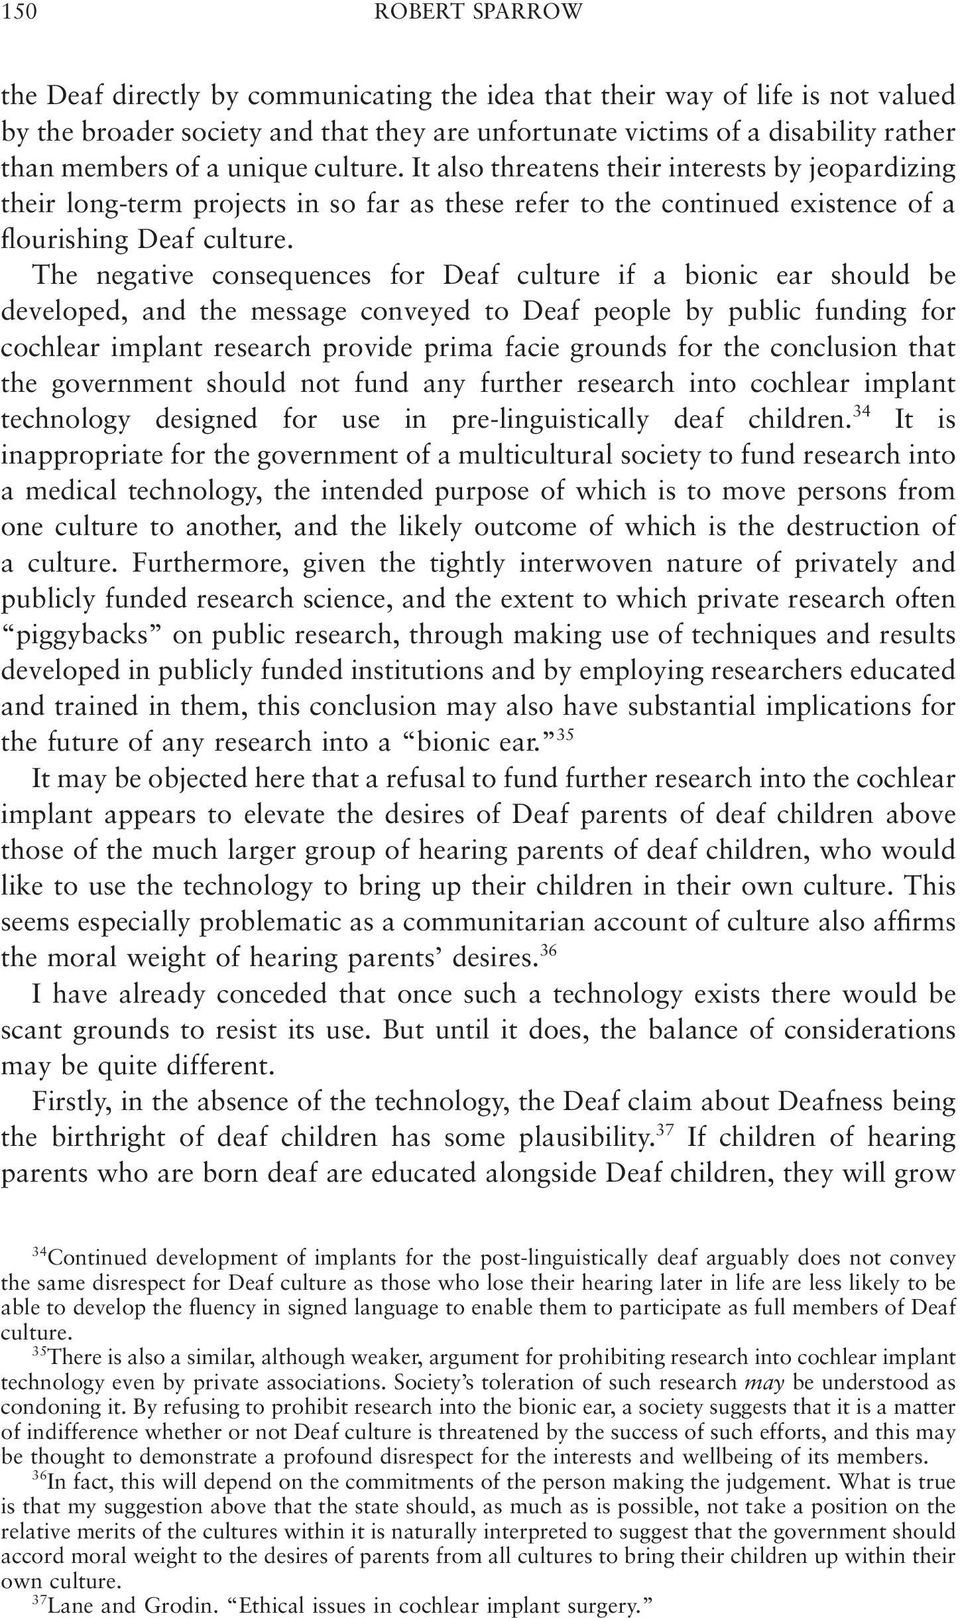 The negative consequences for Deaf culture if a bionic ear should be developed, and the message conveyed to Deaf people by public funding for cochlear implant research provide prima facie grounds for